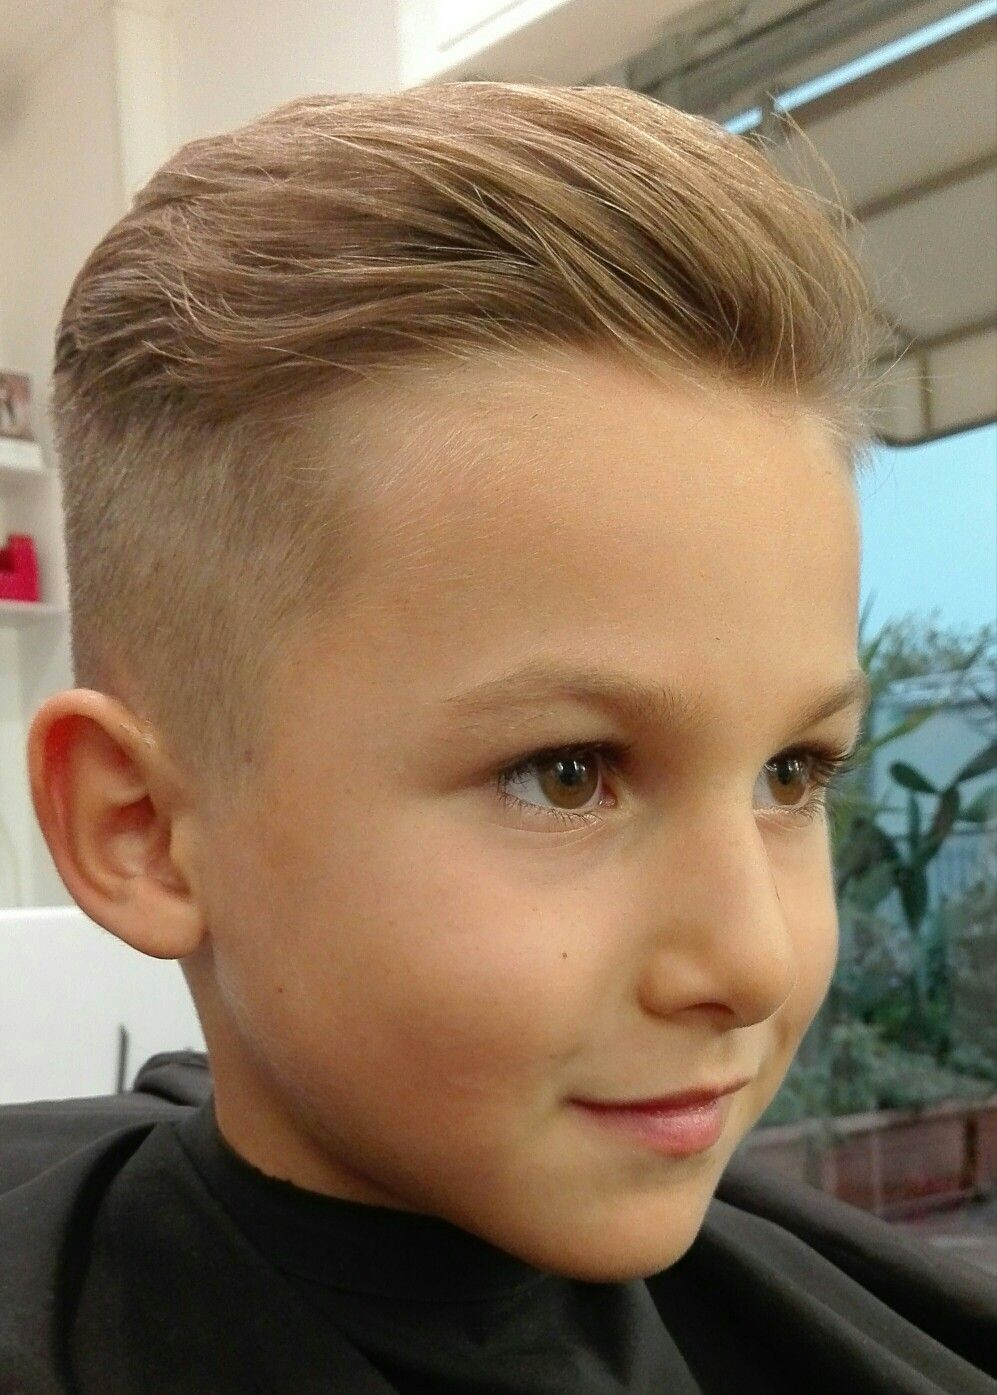 Best ideas about Boys Haircuts 2019 . Save or Pin Pin by Trish Rogers on Hair in 2019 Now.